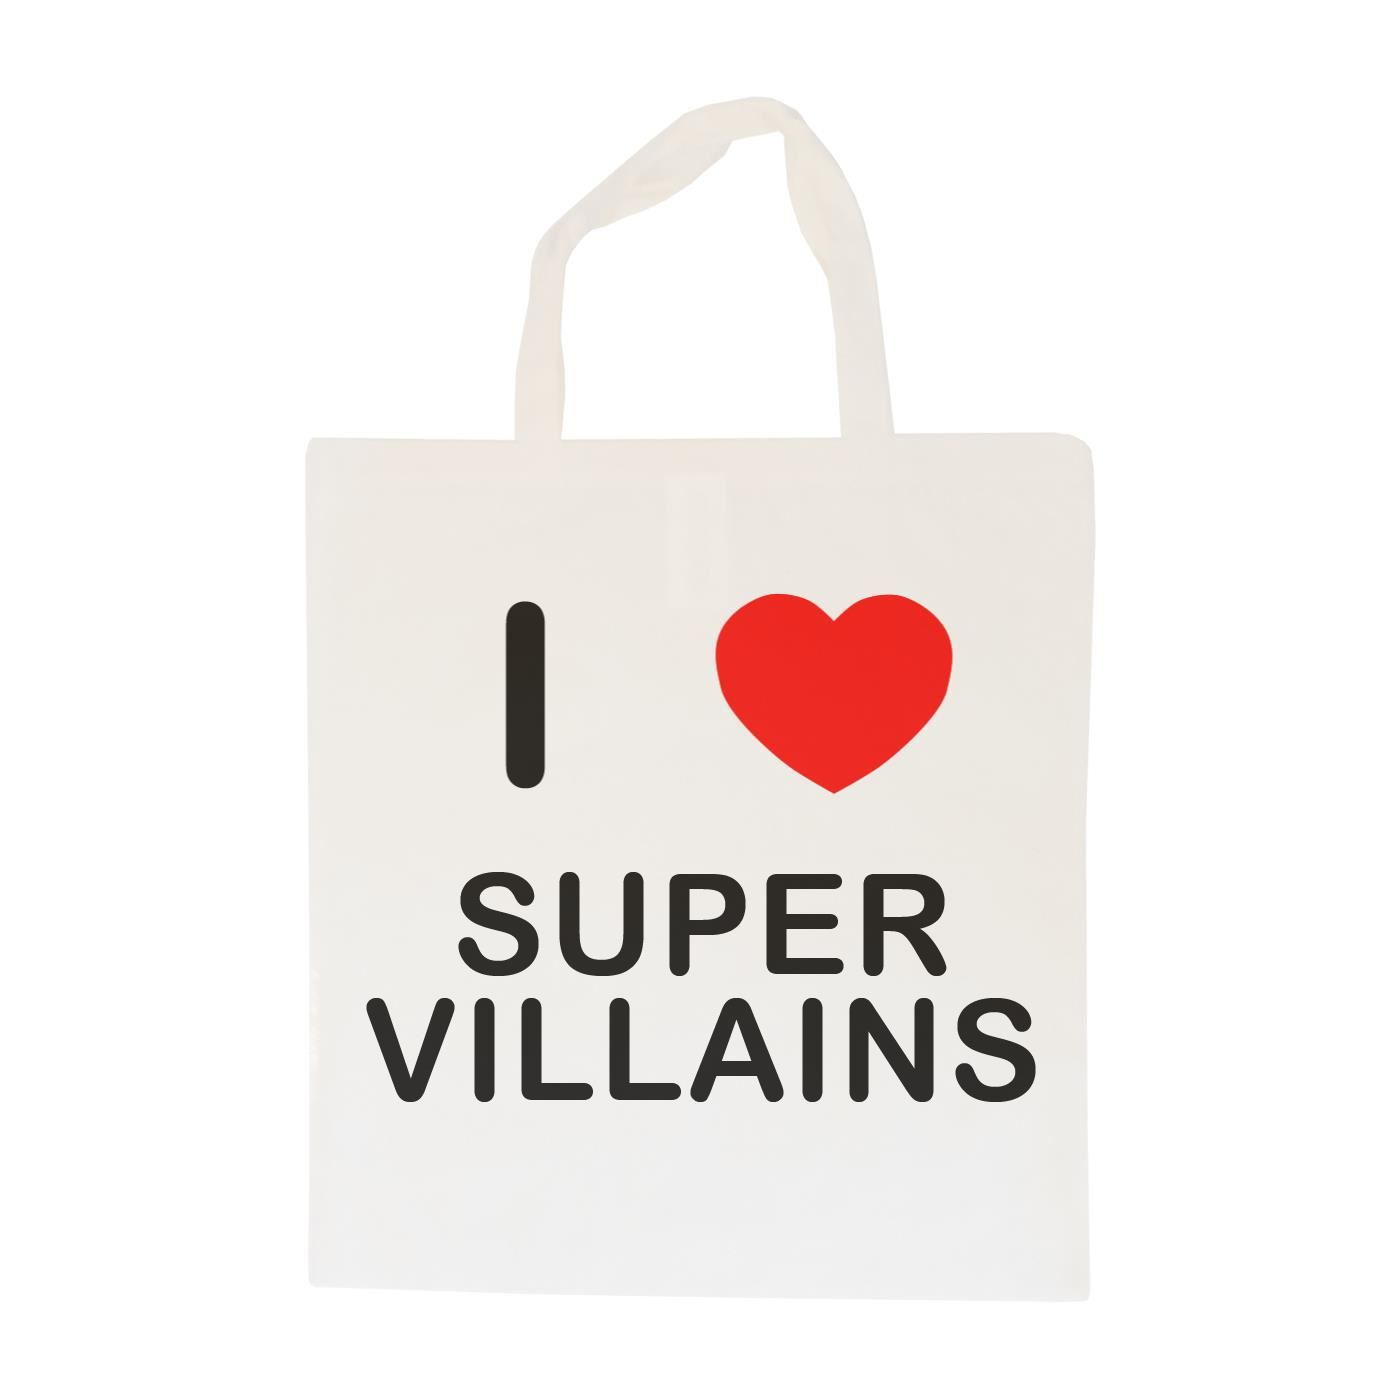 I Love Super Villains - Cotton Bag | Size choice Tote, Shopper or Sling